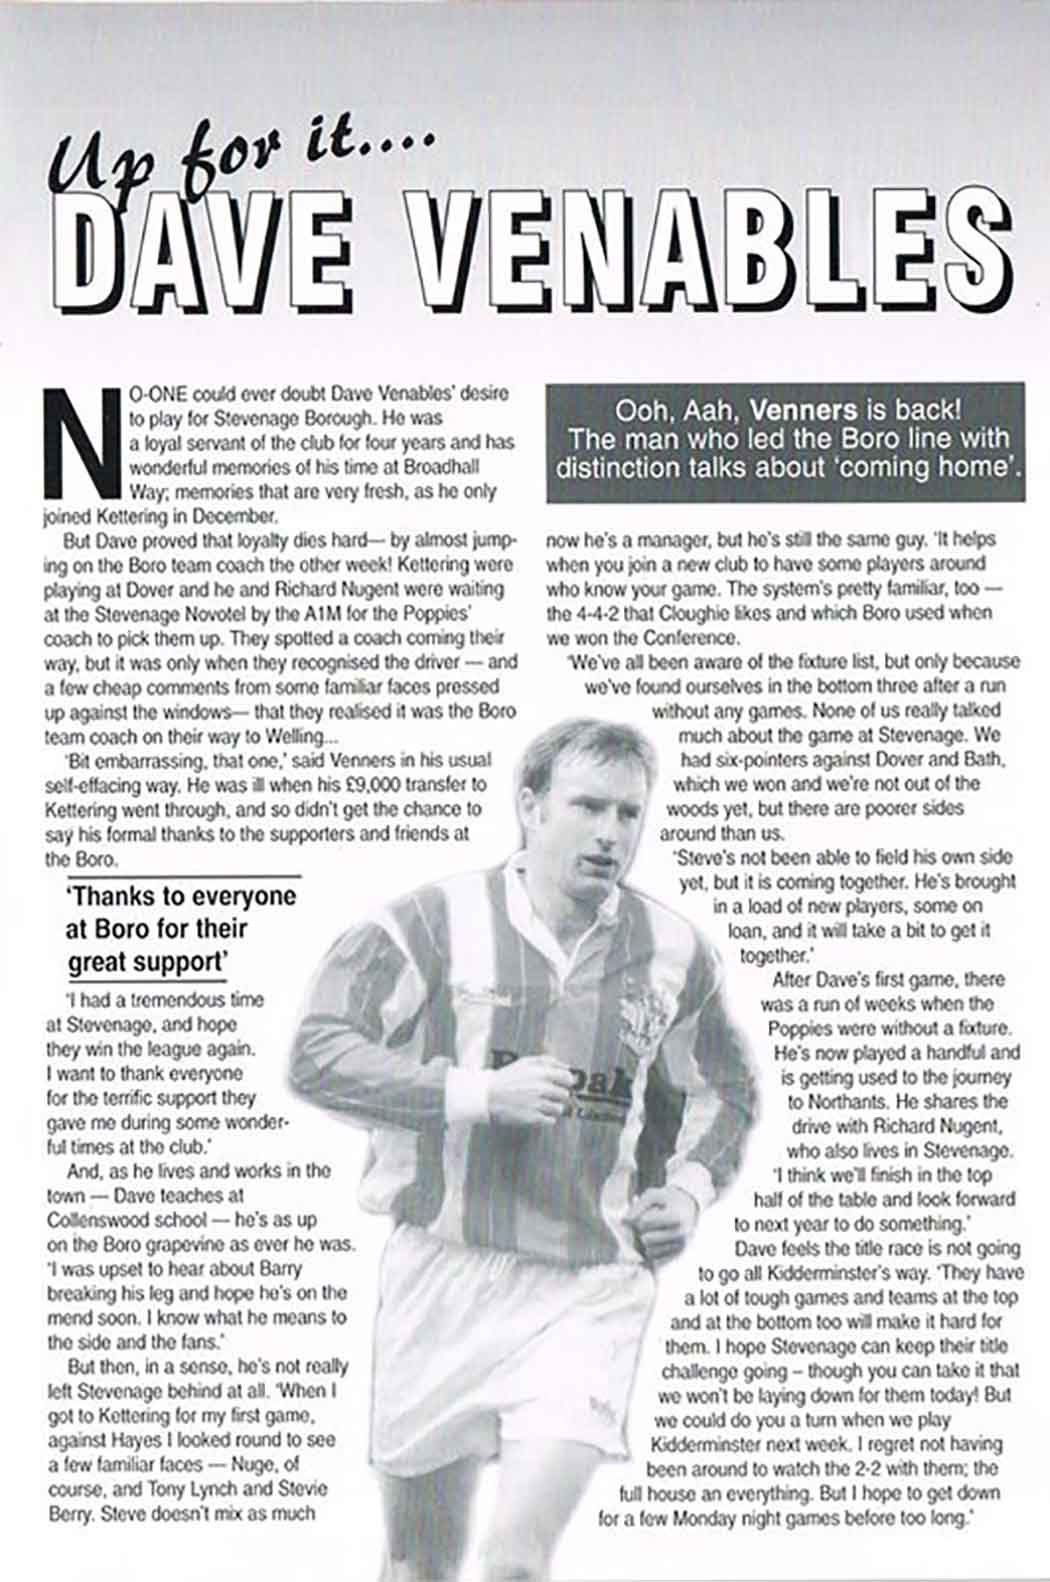 Dave Venables left us in December '96; moving to Kettering Town for a mere £9,000